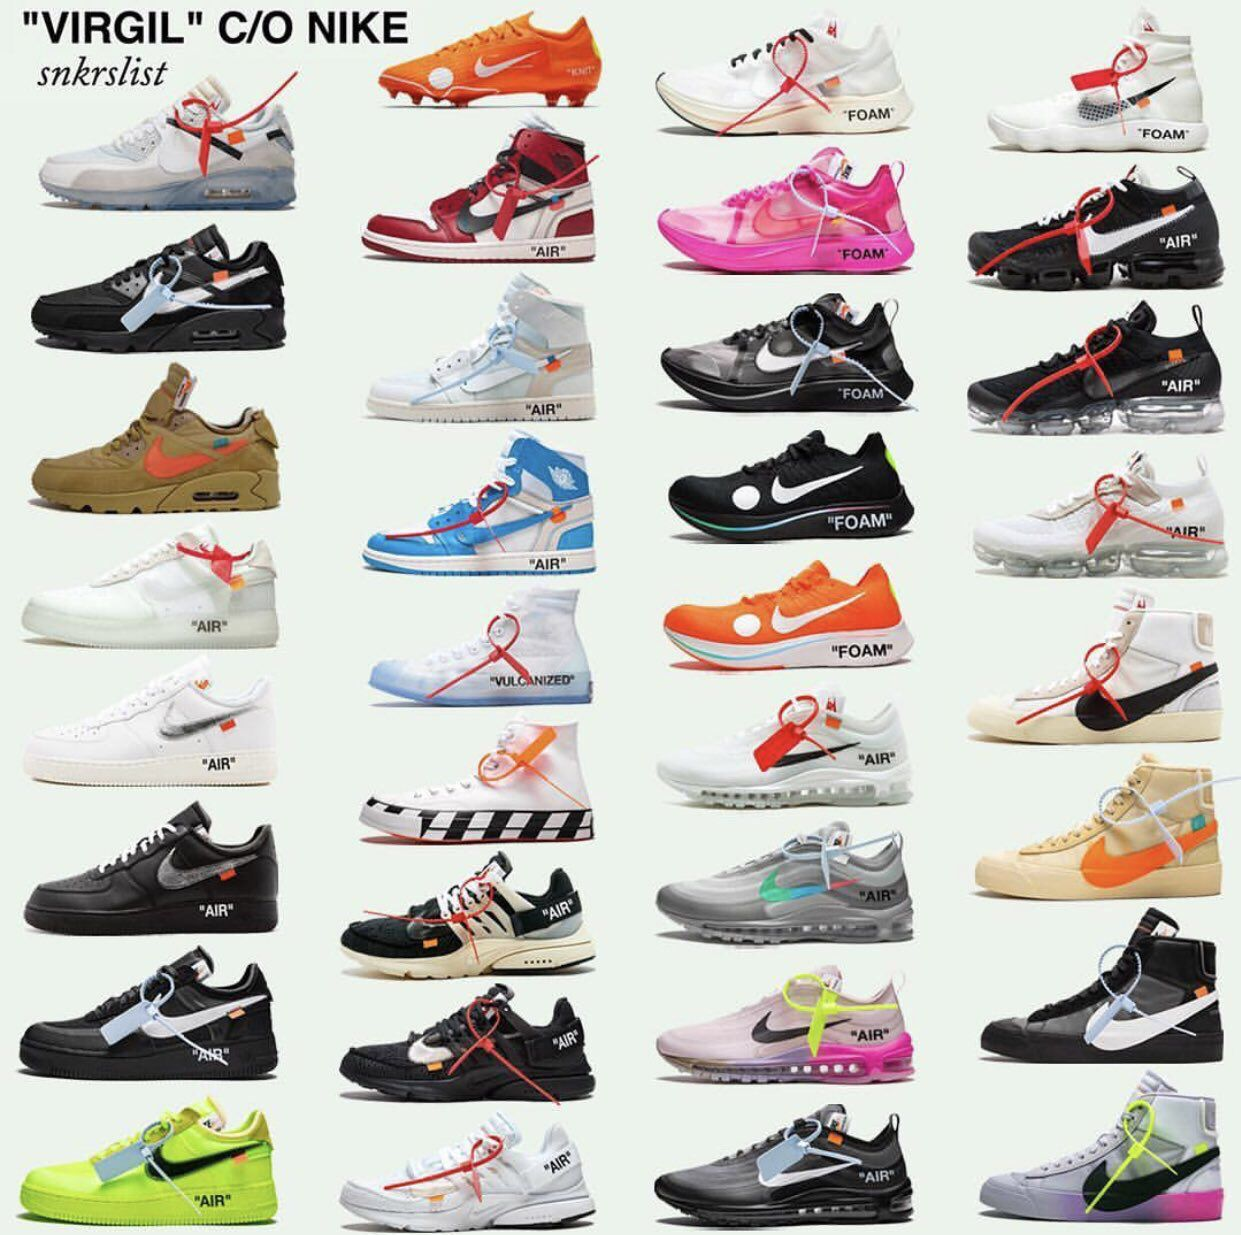 Entire The 10 Collection | Sneakers